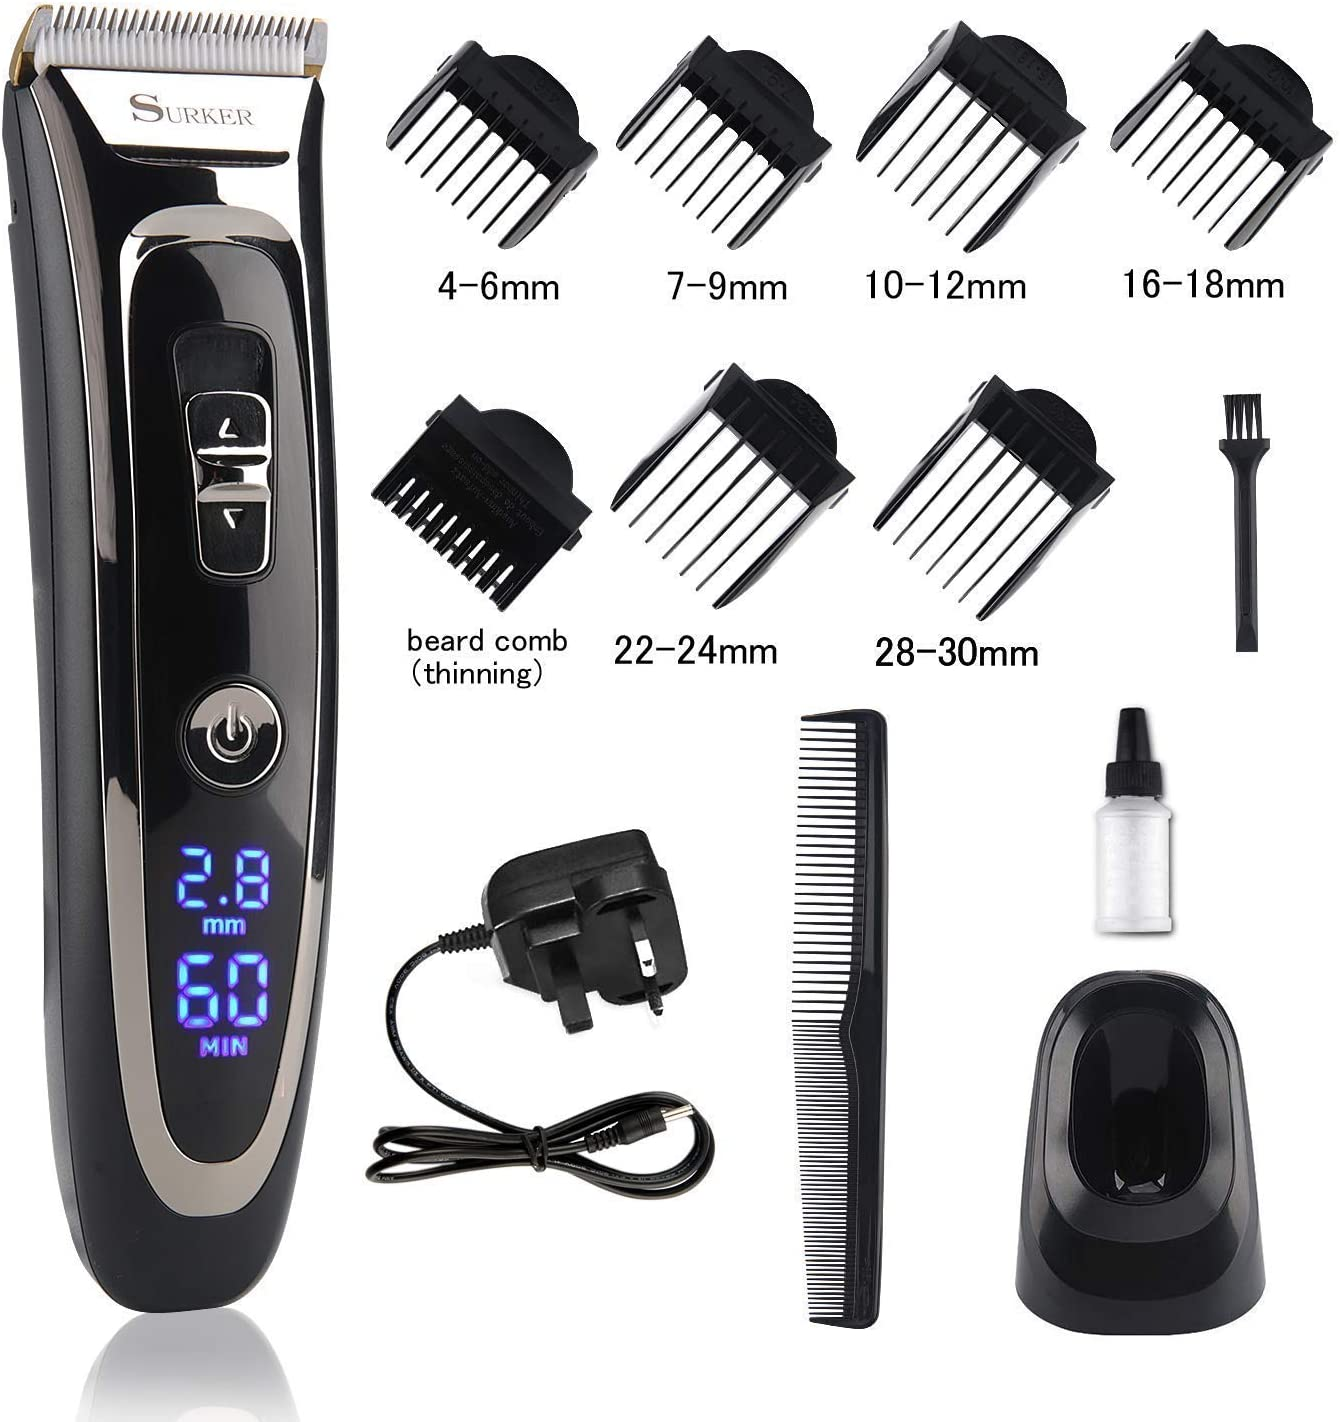 Cordless Hair Clipper Set Rechargeable Electric Hair Trimmer Mens Grooming  Kit Hair Cutting Machine with LED Display Waterproof Ceramic Blade Hair